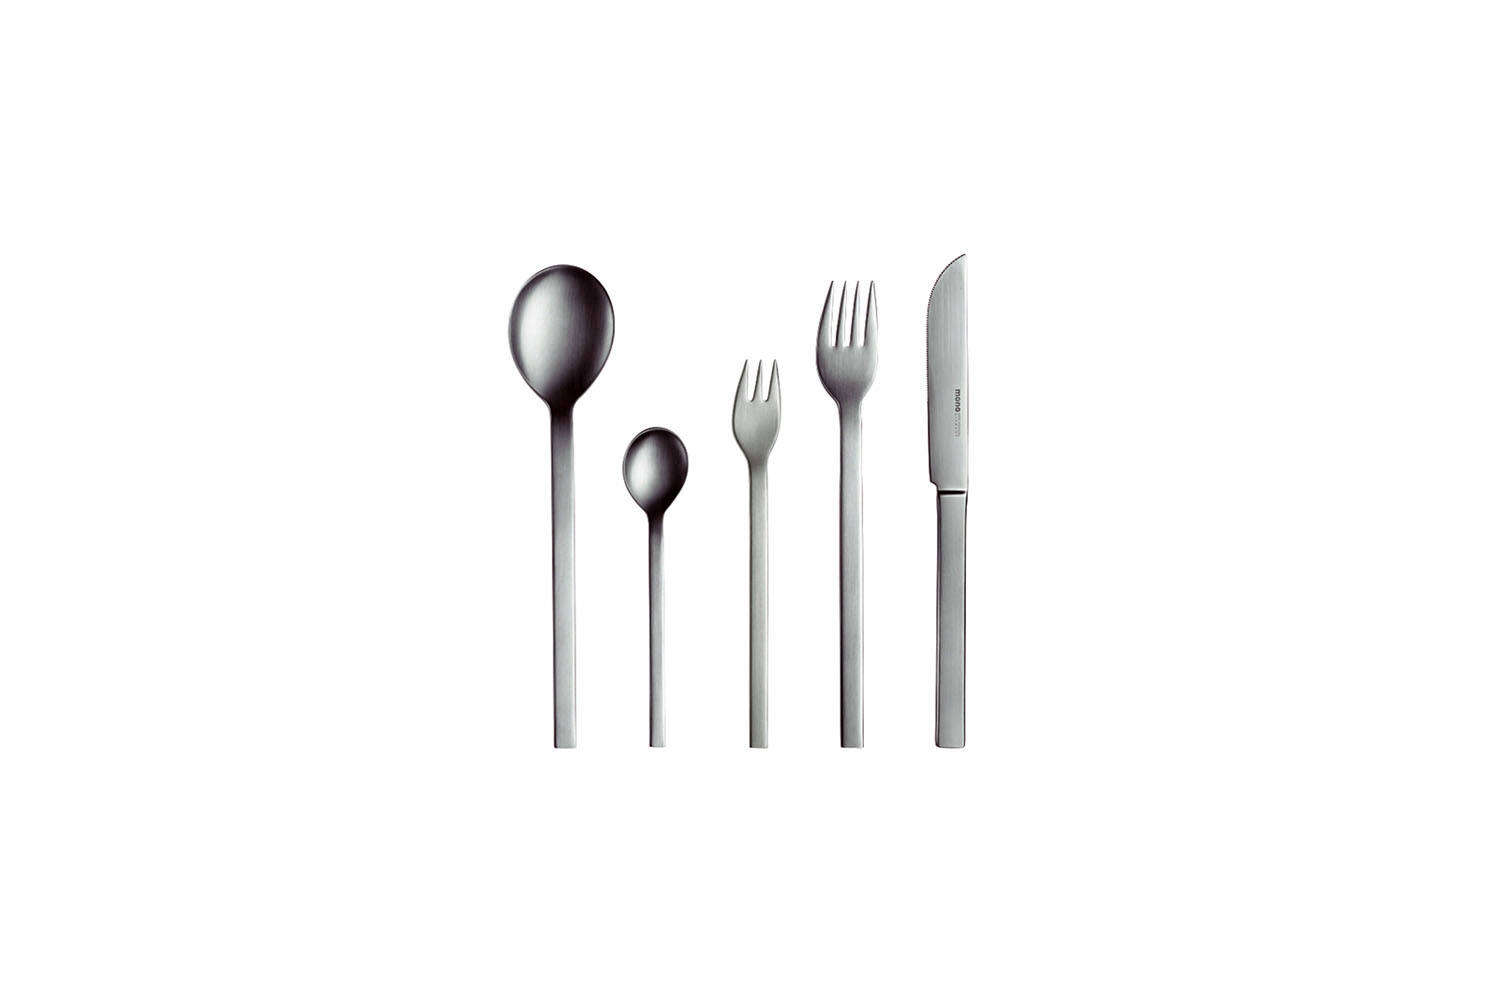 the most sold flatware in germany, peter raacke&#8\2\17;smono a flatware  15